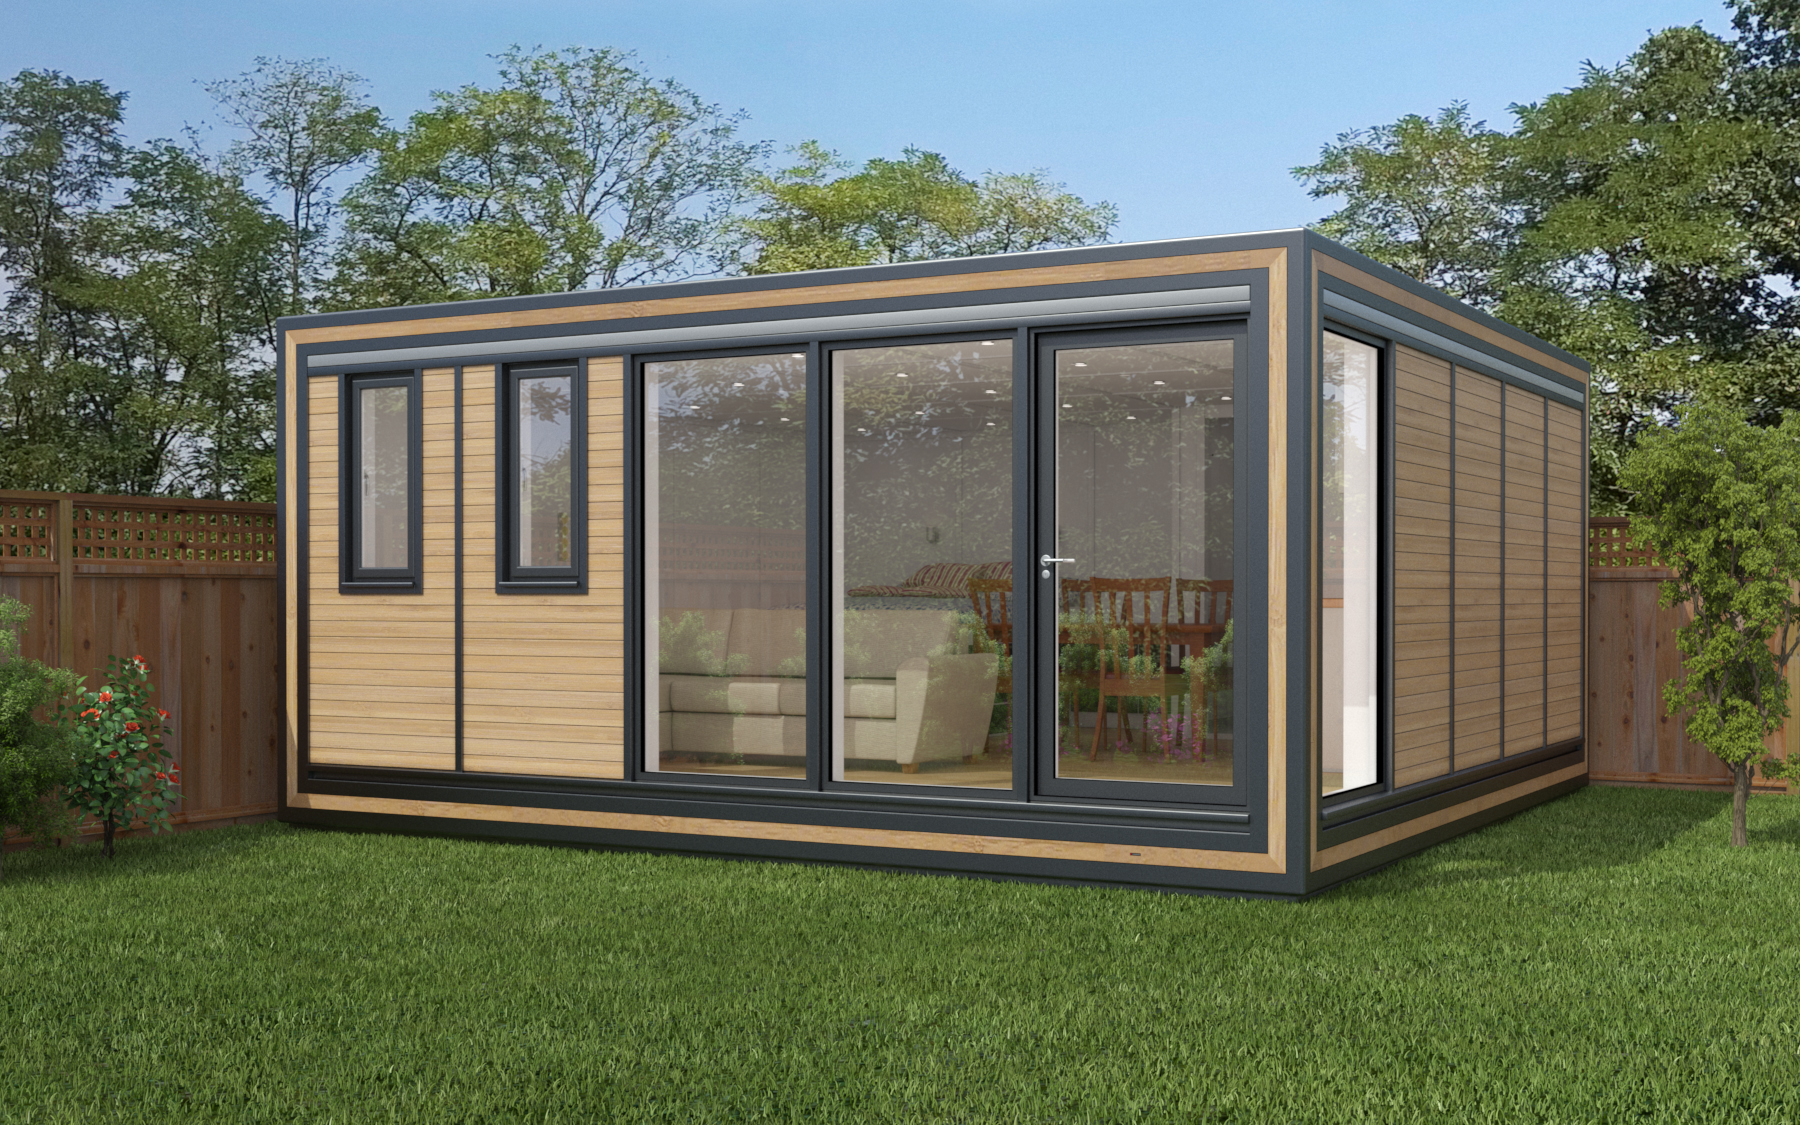 ZEDBOX 550  (5 x 5)  Internal Size: 5330 x 5330  External Size: 5800 x 5800  Bed Options: Single or Double  Kitchen Options: Micro or Premier  Wet Room Options: Yes  Portico: No  Price:  £43,000    Optional Extras    Request Zedbox Catalogue